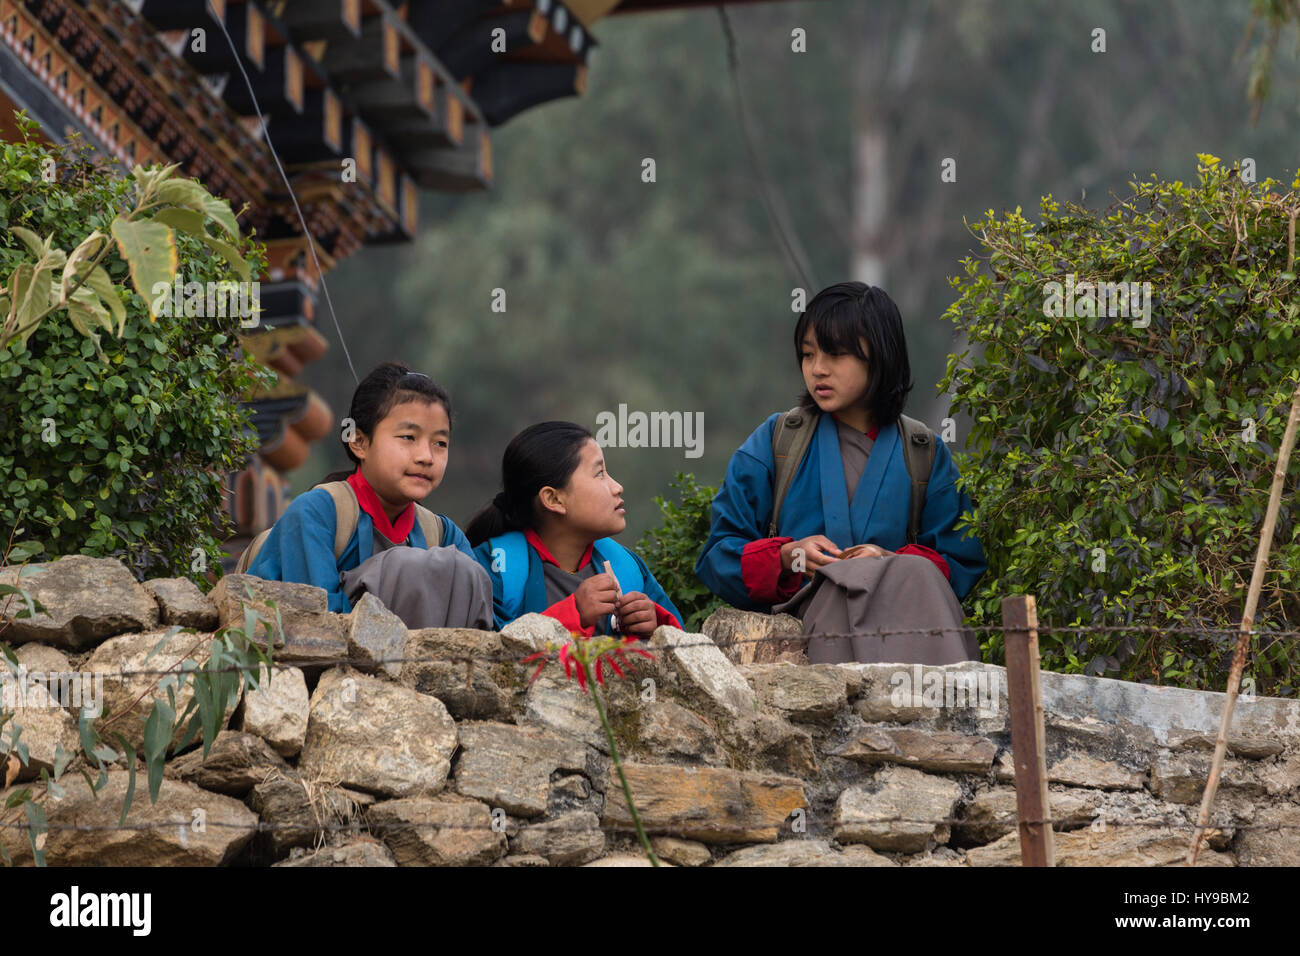 Three teen-age schoolgirls in traditional kira skirts and tego jackets visit before school in Punakha, Bhutan. - Stock Image